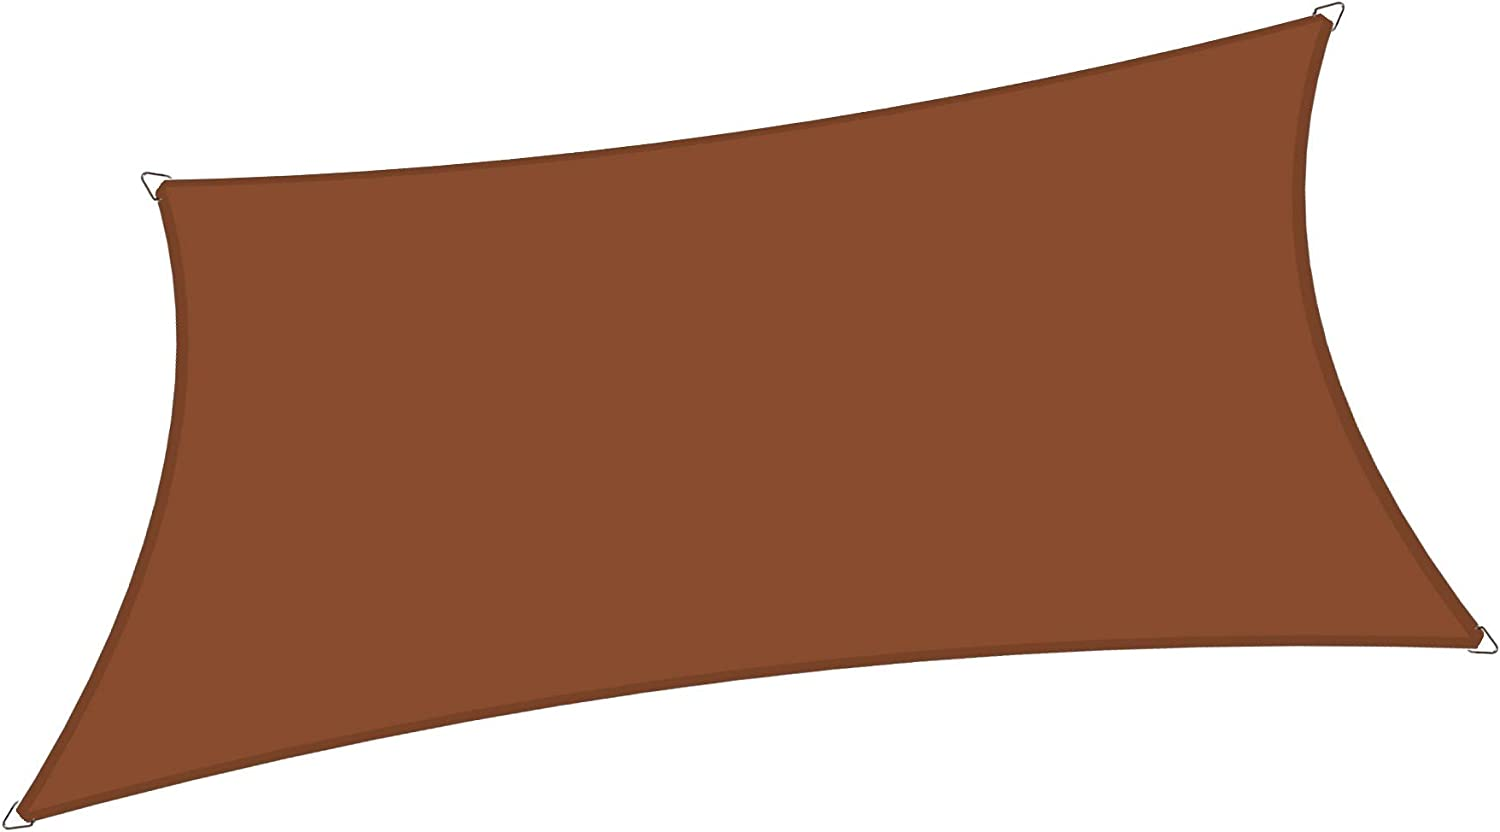 Alion Home 10' x 13' Waterproof Curved Edge Woven Polyester Sun Shade Sail (Pecan Brown)